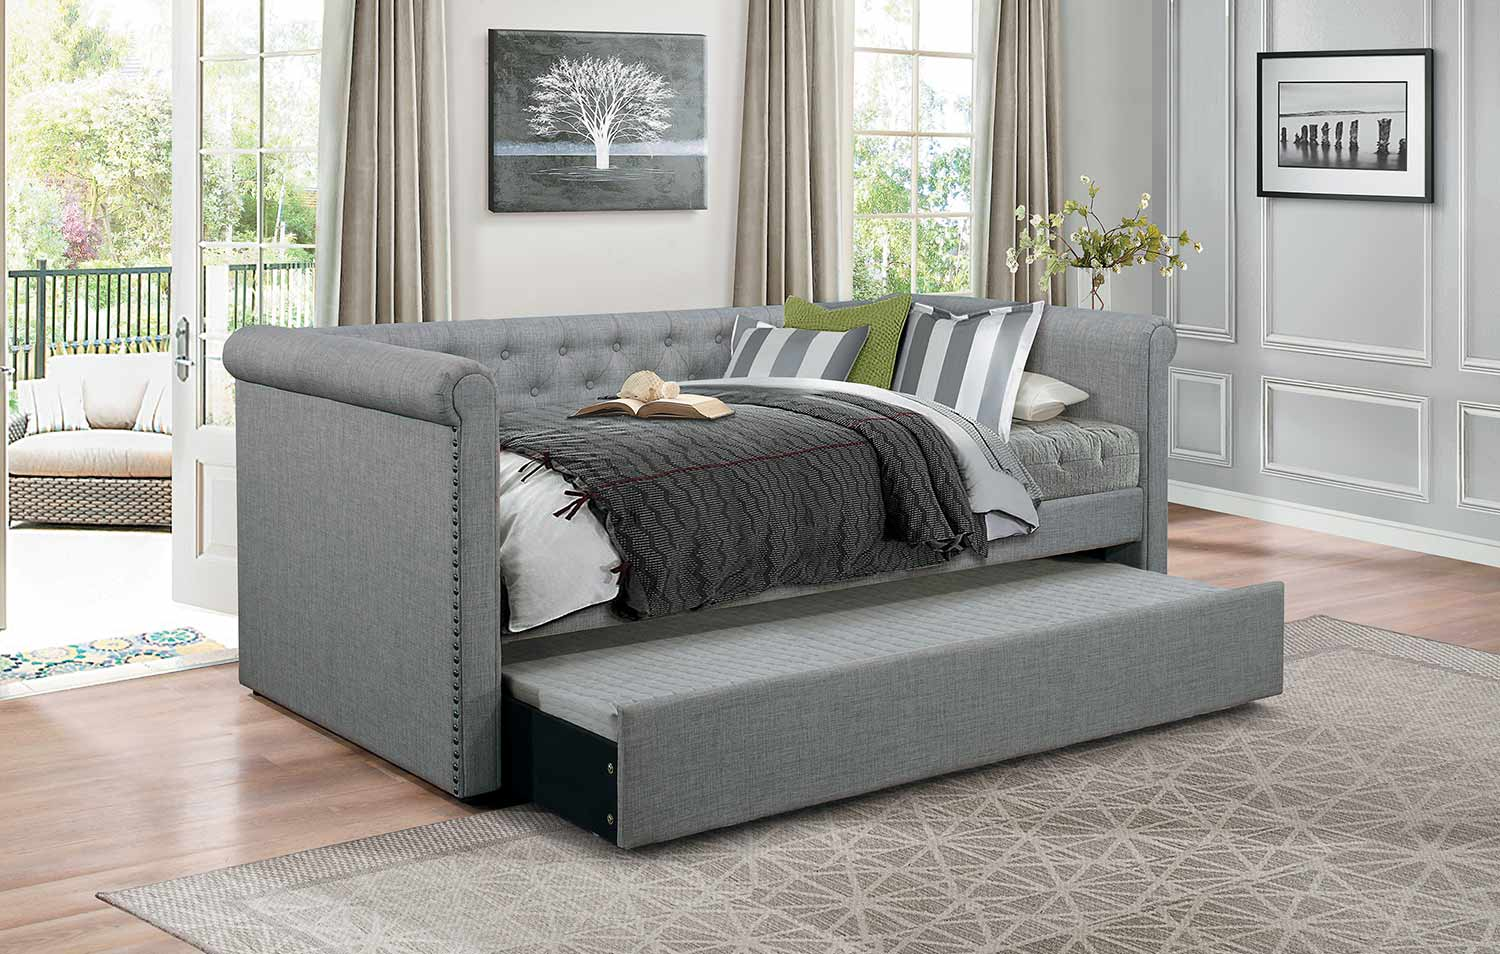 Homelegance Edmund Button Tufted Upholstered Daybed with Trundle - Gray